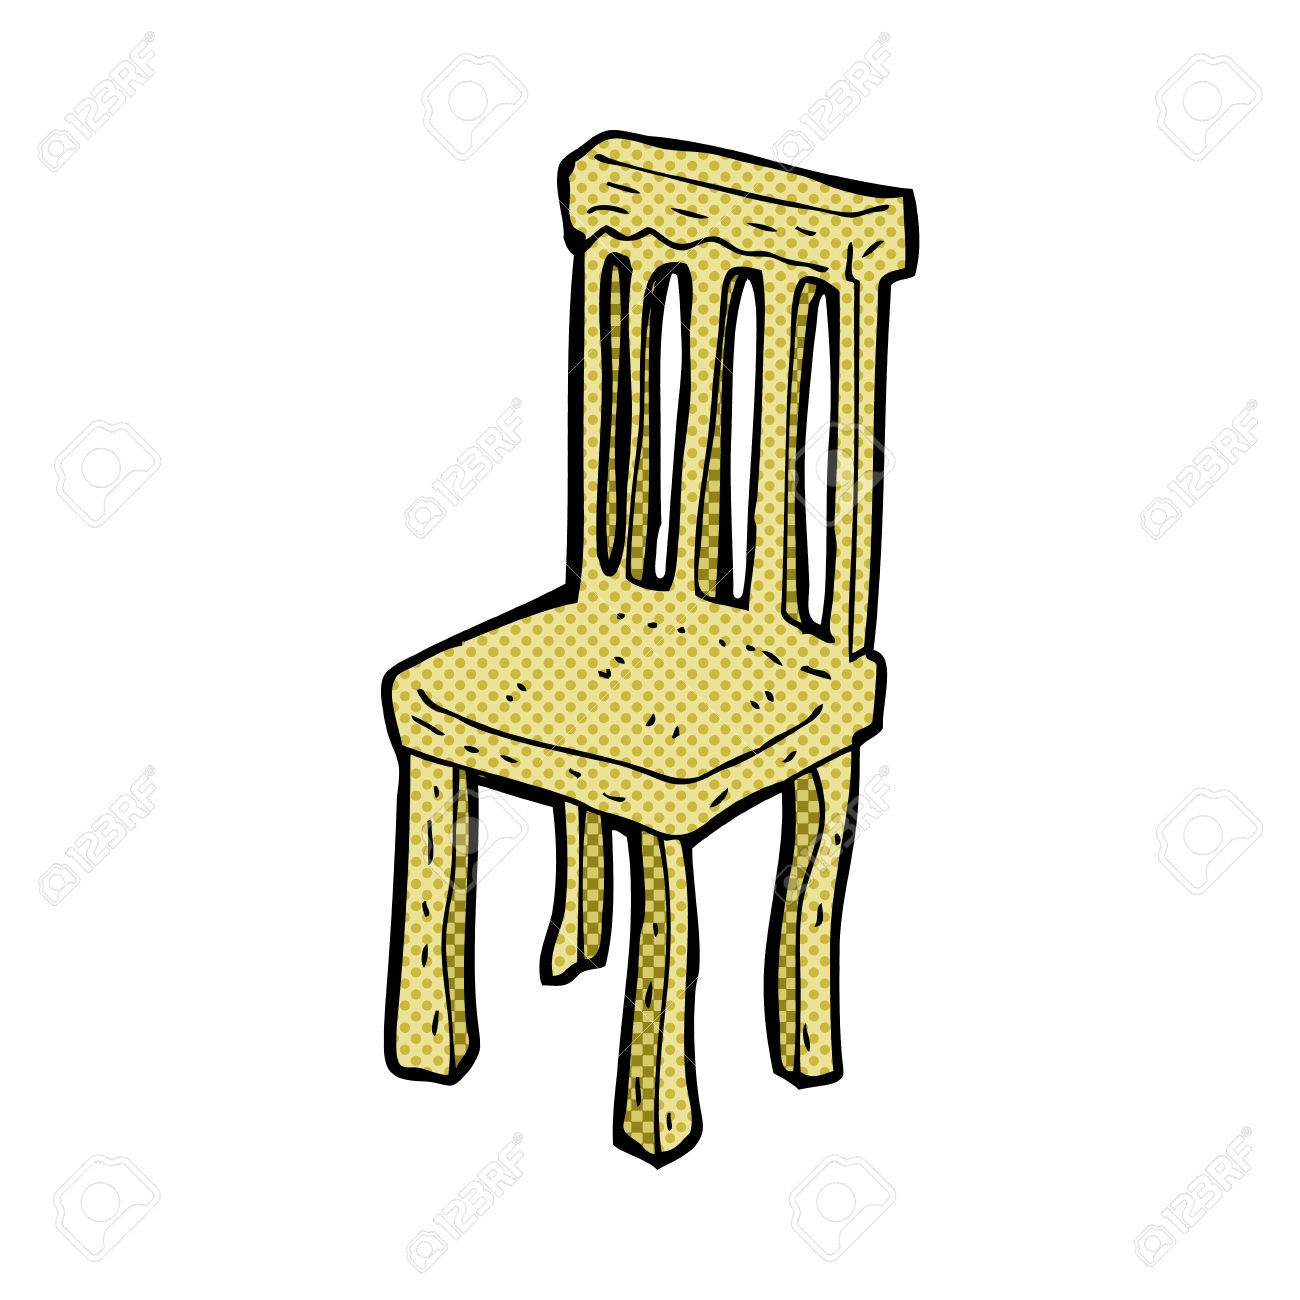 Retro Comic Book Style Cartoon Old Wooden Chair